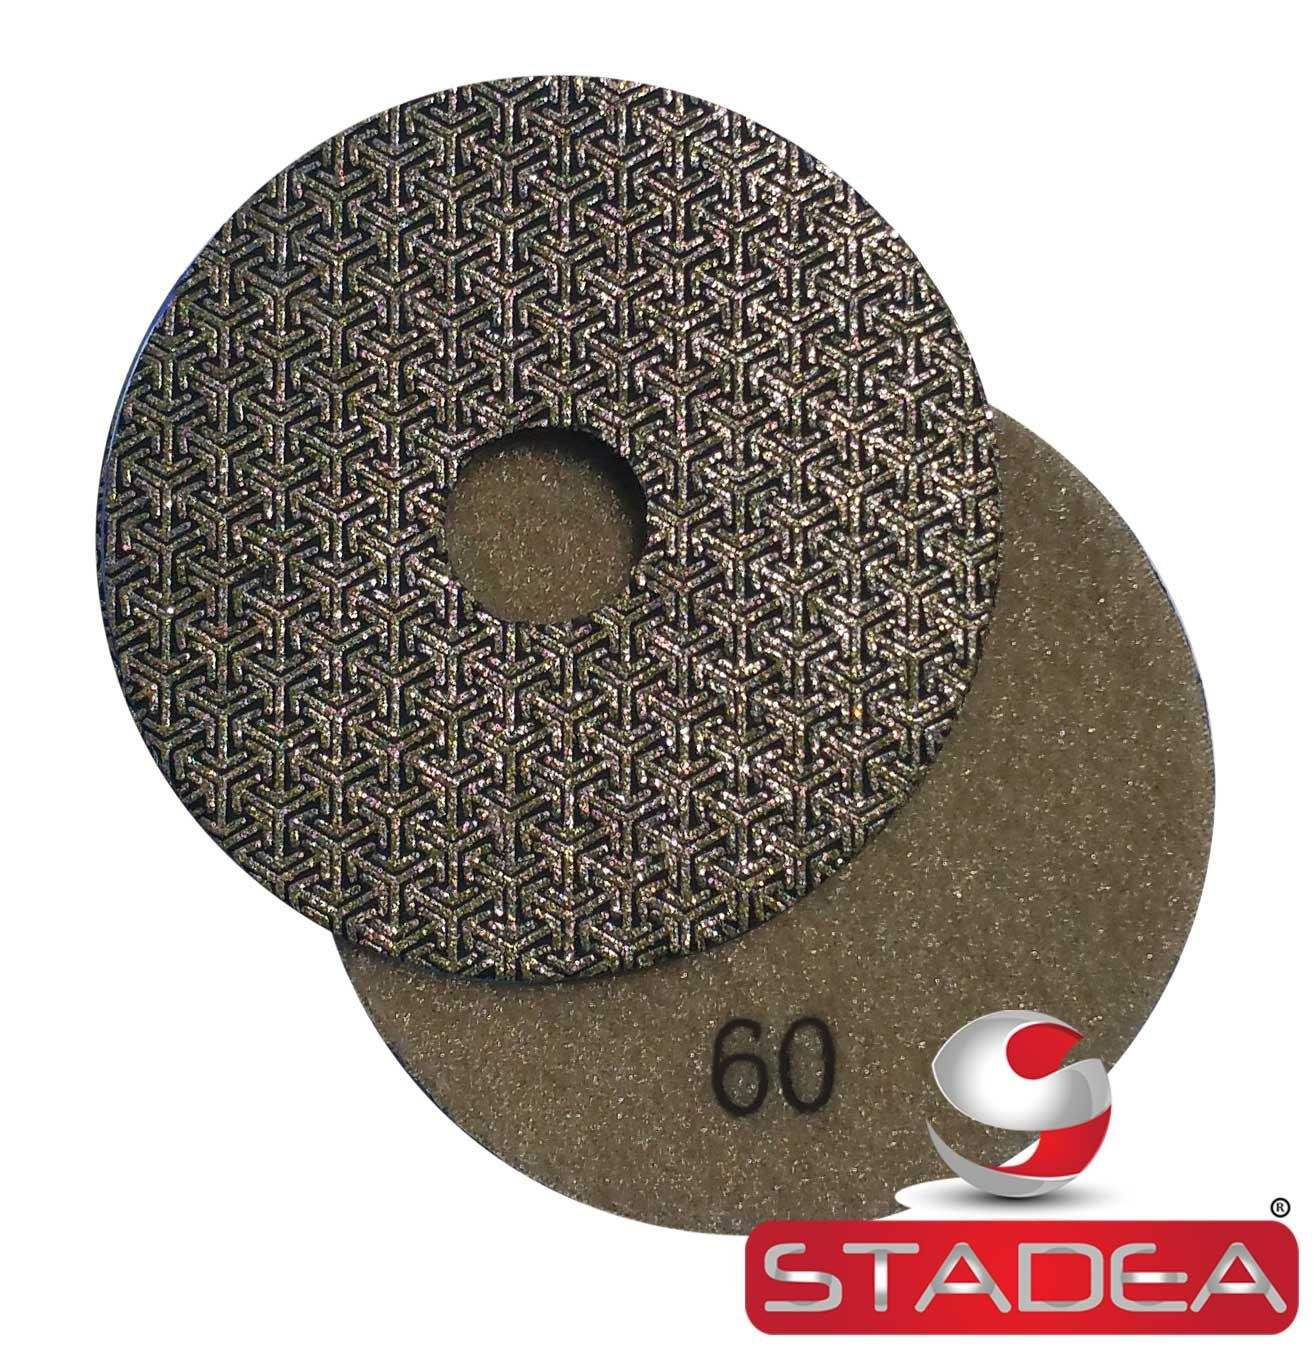 "Stadea PPE113A Electroplated Diamond Polishing Pads 4"" Diamond Wet Dry Sandpaper for Glass Concrete Marble Granite Polishing Sanding"